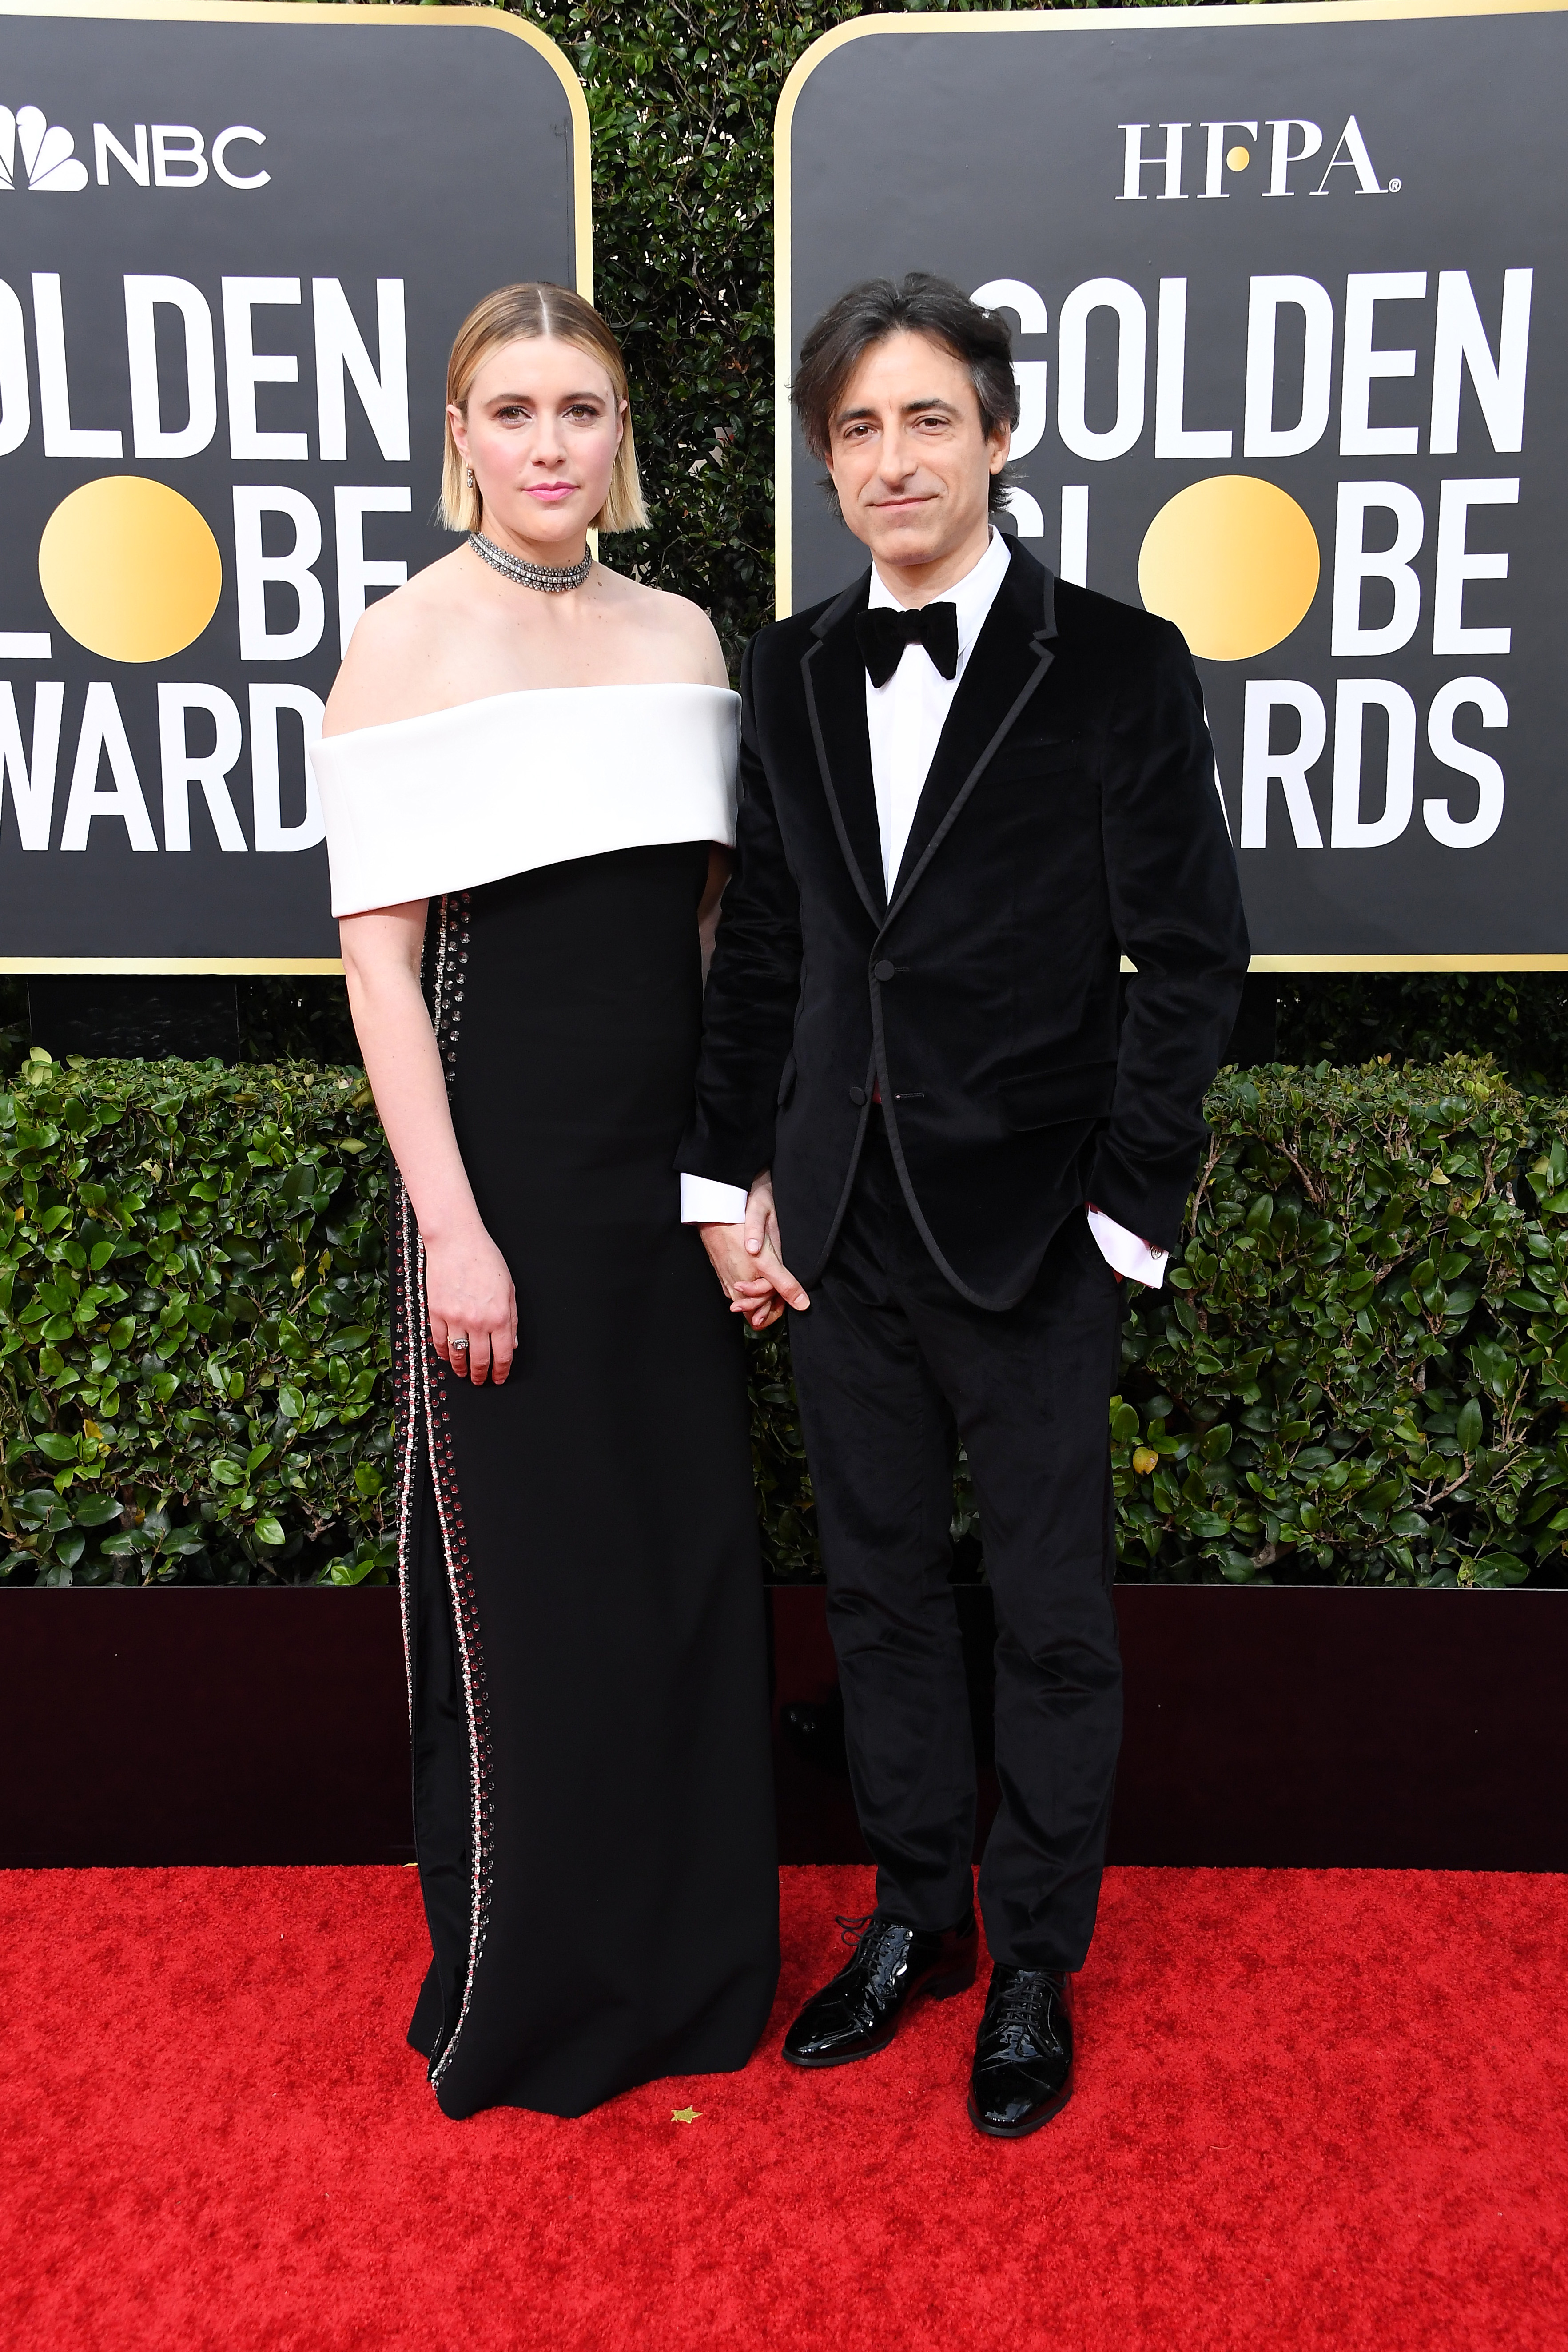 BEVERLY HILLS, CALIFORNIA - JANUARY 05:  (L-R) Greta Gerwig and  Noah Baumbach attend the 77th Annual Golden Globe Awards at The Beverly Hilton Hotel on January 05, 2020 in Beverly Hills, California. (Photo by Steve Granitz/WireImage)